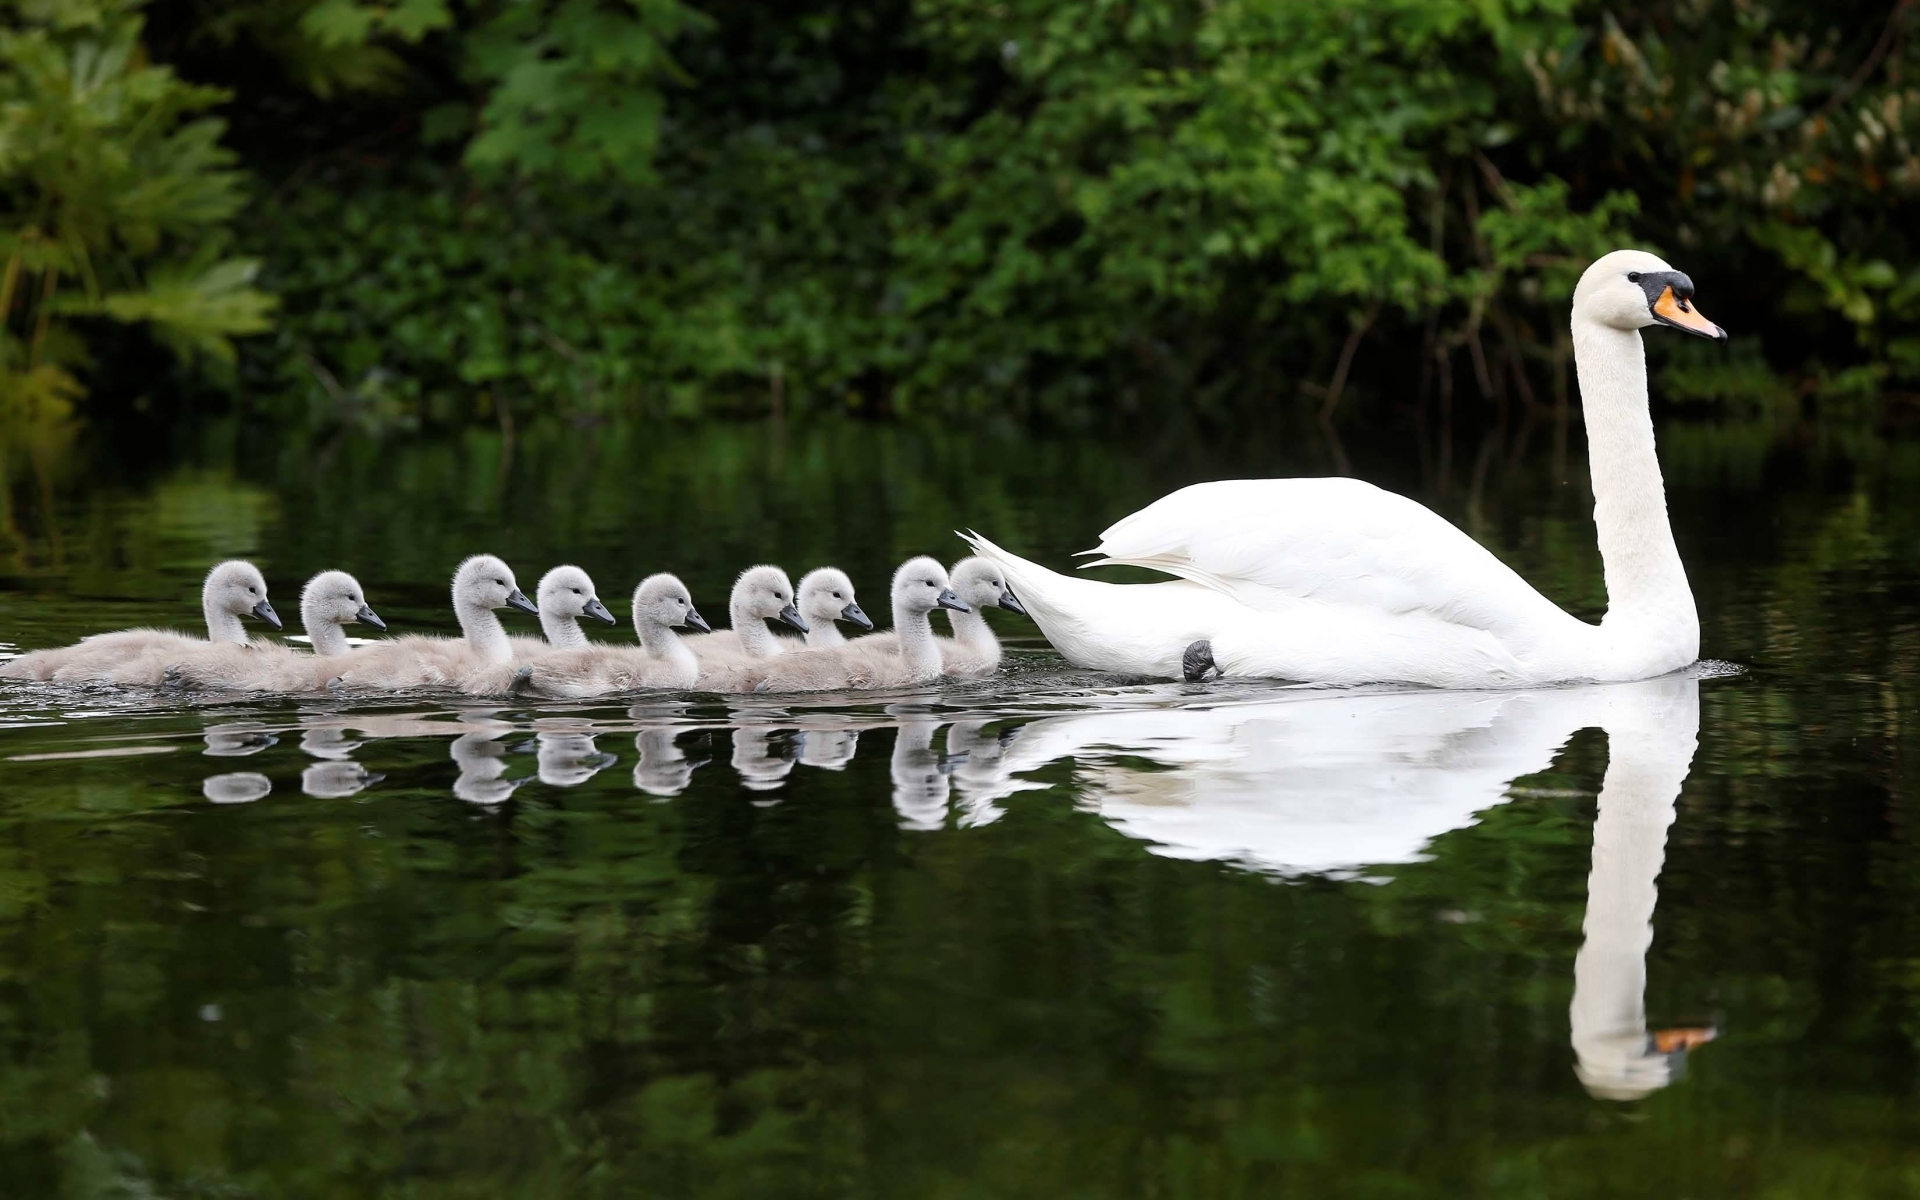 Hd Animal Wallpapers Hd Music Wallpapers: Mute Swan Full HD Wallpaper And Background Image